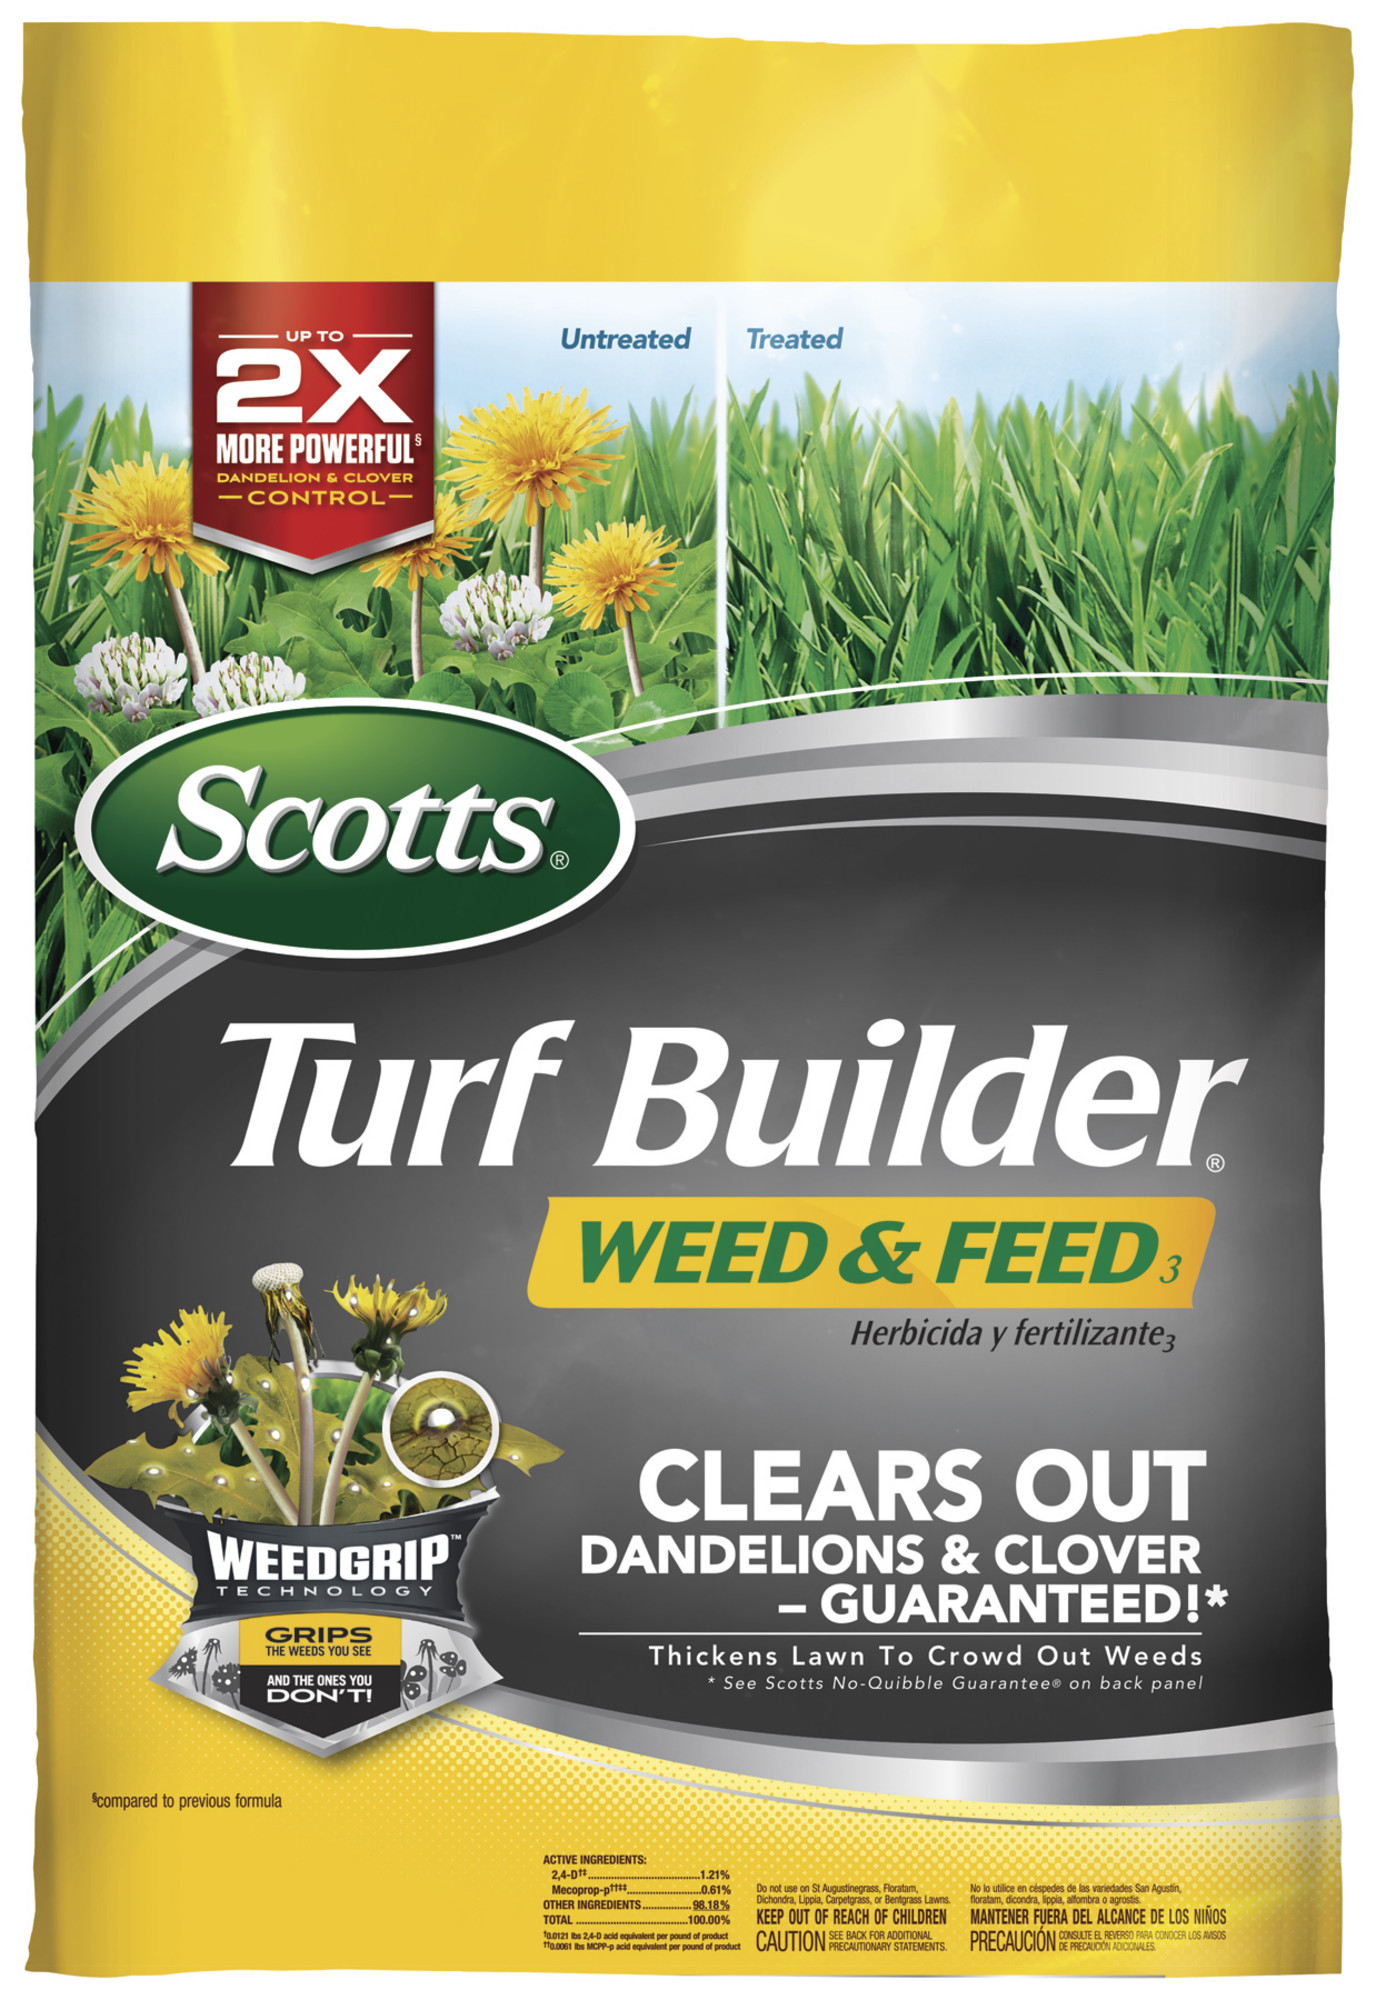 Scotts Turf Builder Weed And Feed Lawn Fertilizer Lawn Care Scotts